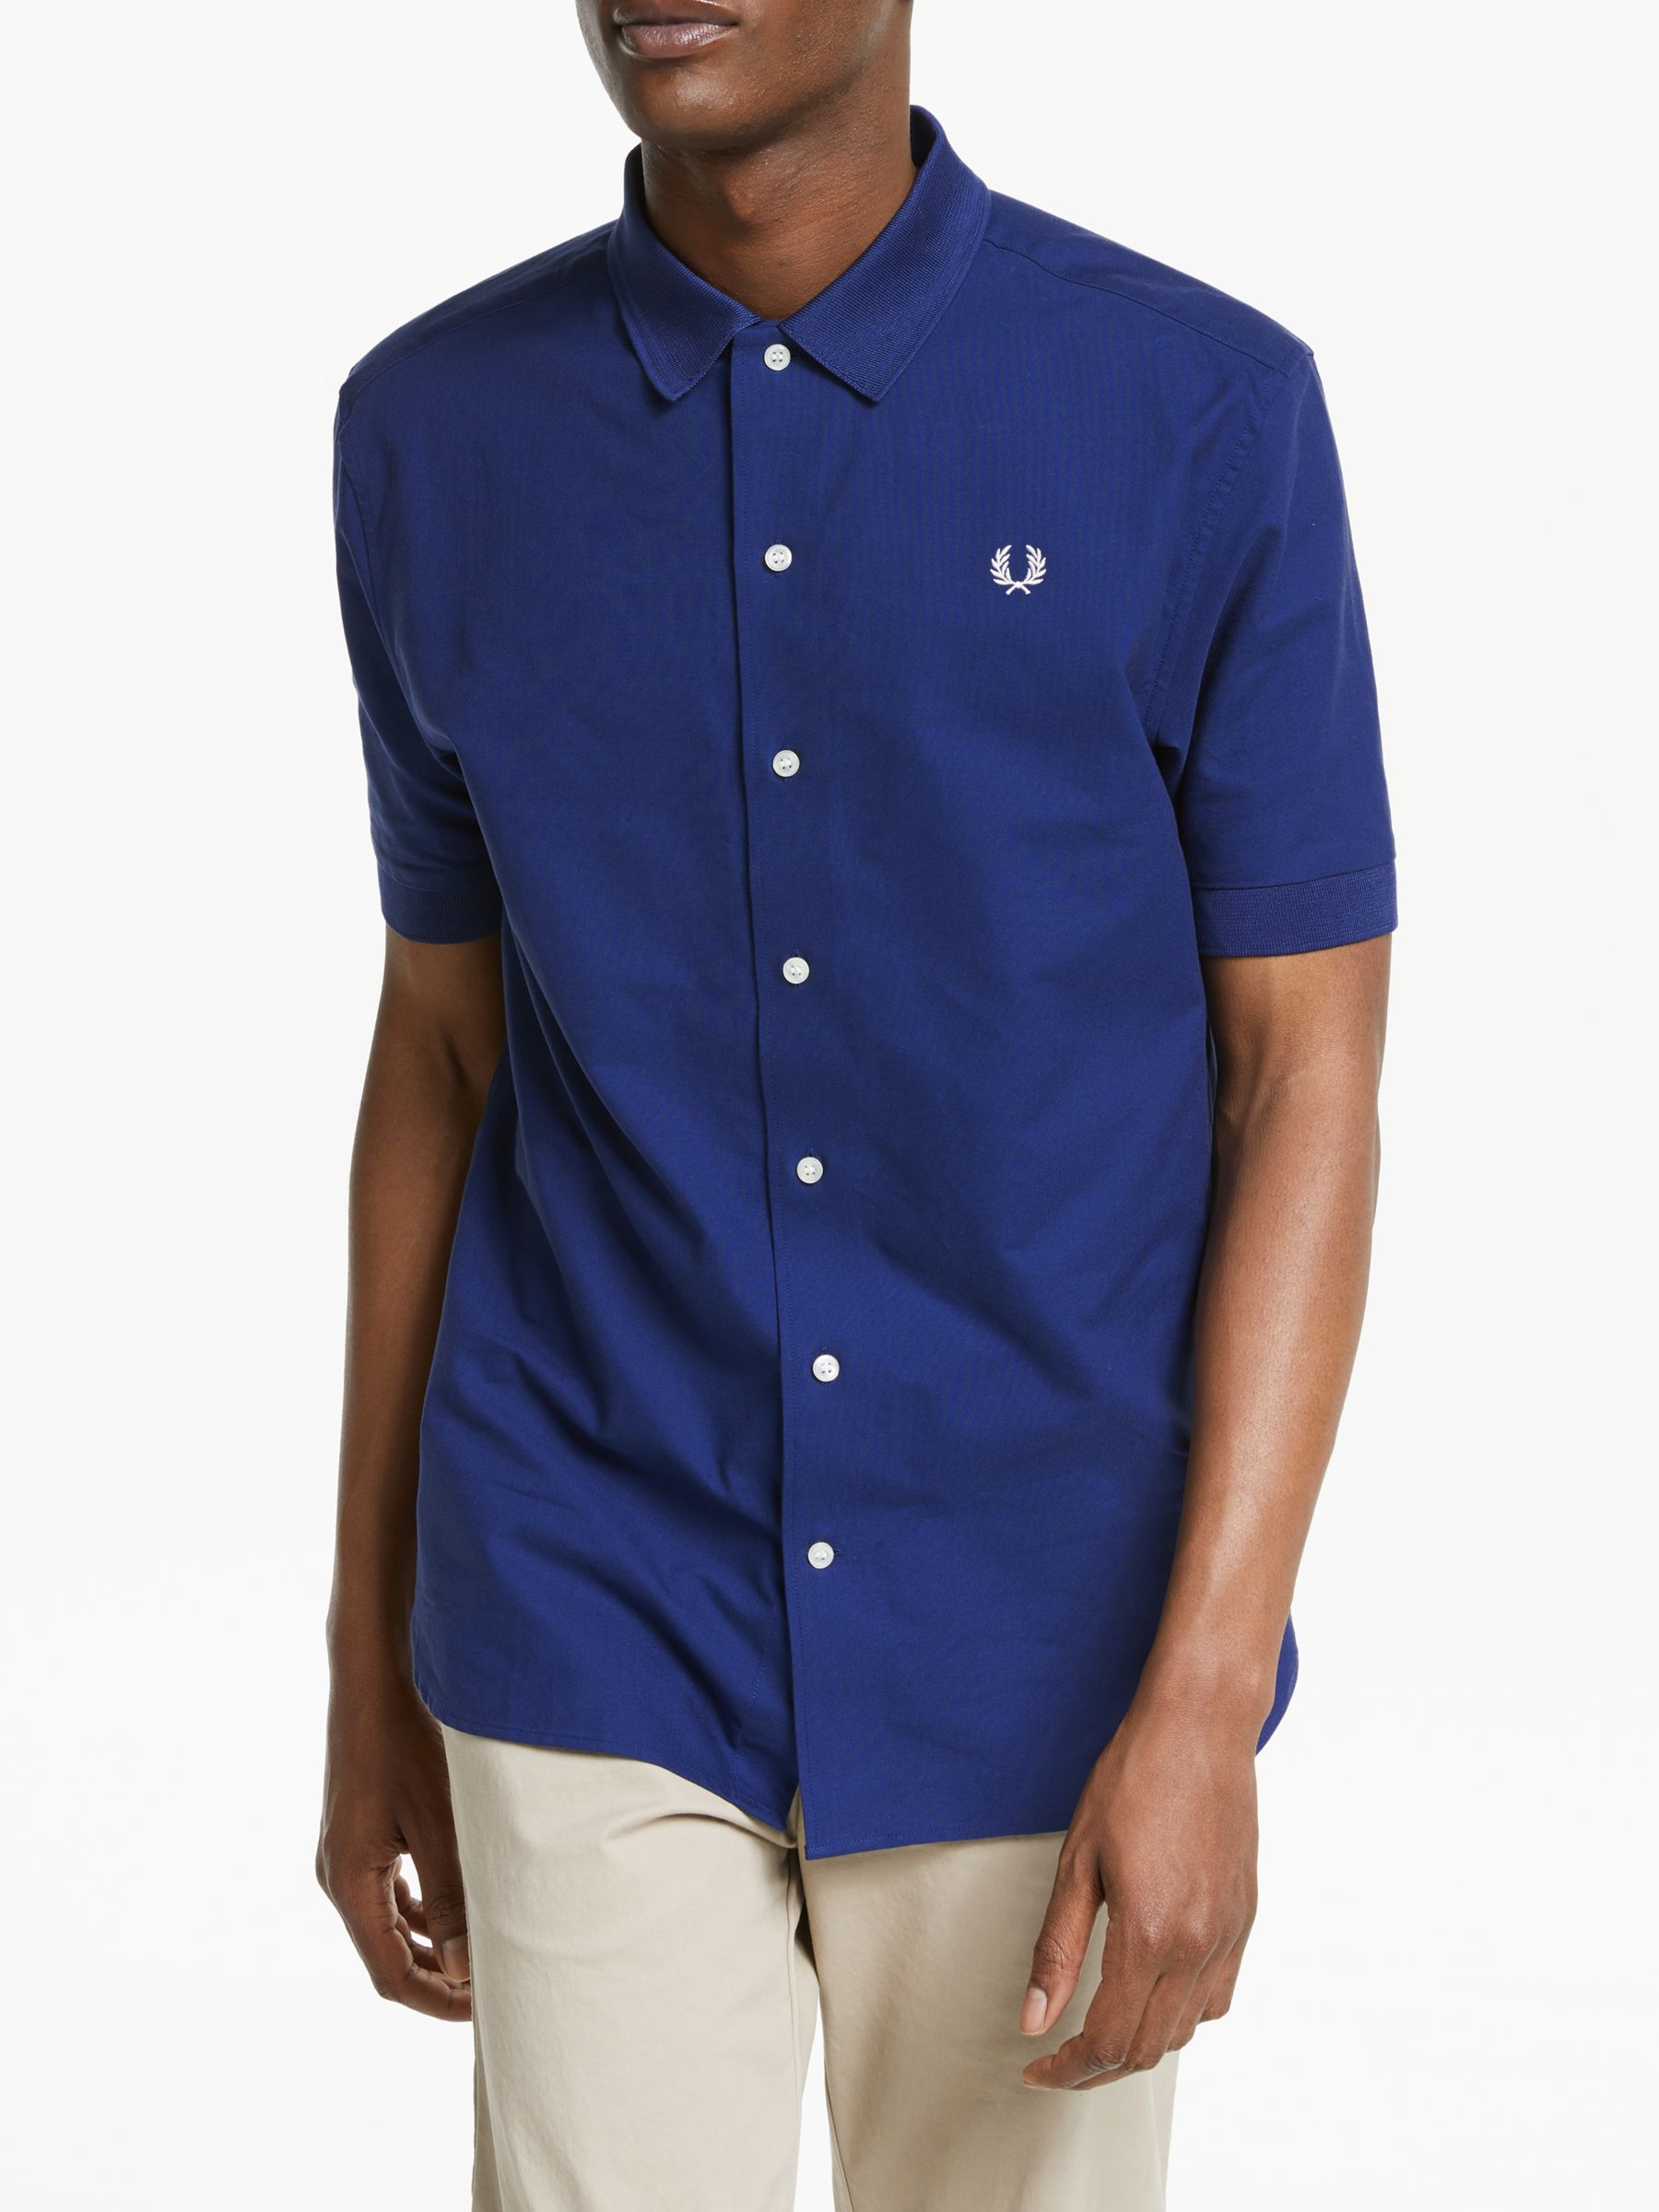 Fred Perry Classic Oxford Short Sleeve Shirt, French Navy at